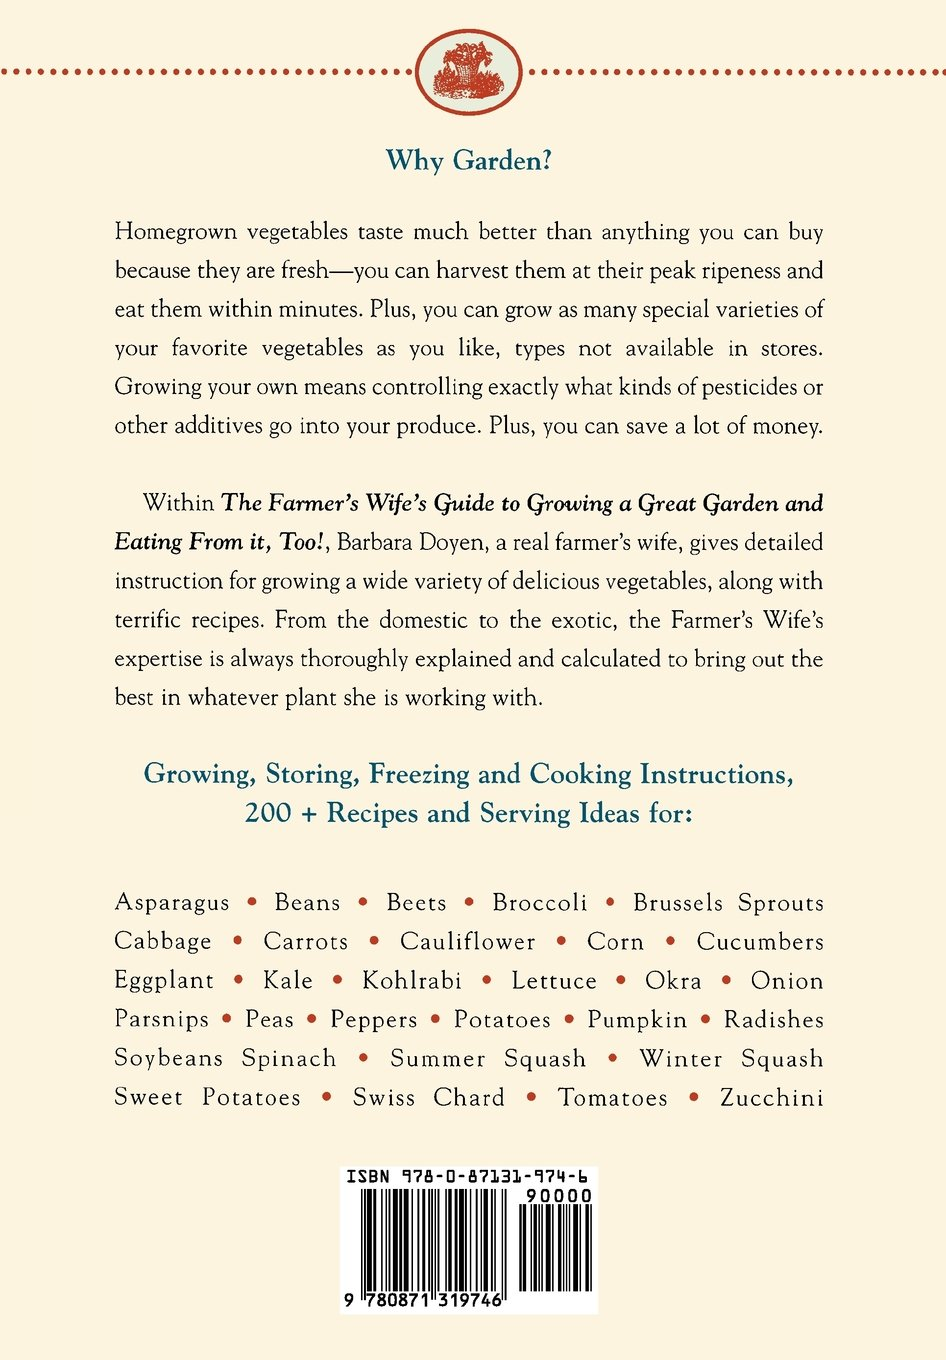 Pleasant The Farmers Wife Guide To Growing A Great Garden And Eating From  With Fetching The Farmers Wife Guide To Growing A Great Garden And Eating From It Too  Storing Freezing And Cooking Your Own Vegetables Barbara Doyen  With Astonishing Gardens In Cotswolds Also The Good Witchs Garden In Addition Craven Gardens And Garden Trunk As Well As Garden Perennial Plants Additionally Garden Topsoil From Amazoncom With   Fetching The Farmers Wife Guide To Growing A Great Garden And Eating From  With Astonishing The Farmers Wife Guide To Growing A Great Garden And Eating From It Too  Storing Freezing And Cooking Your Own Vegetables Barbara Doyen  And Pleasant Gardens In Cotswolds Also The Good Witchs Garden In Addition Craven Gardens From Amazoncom